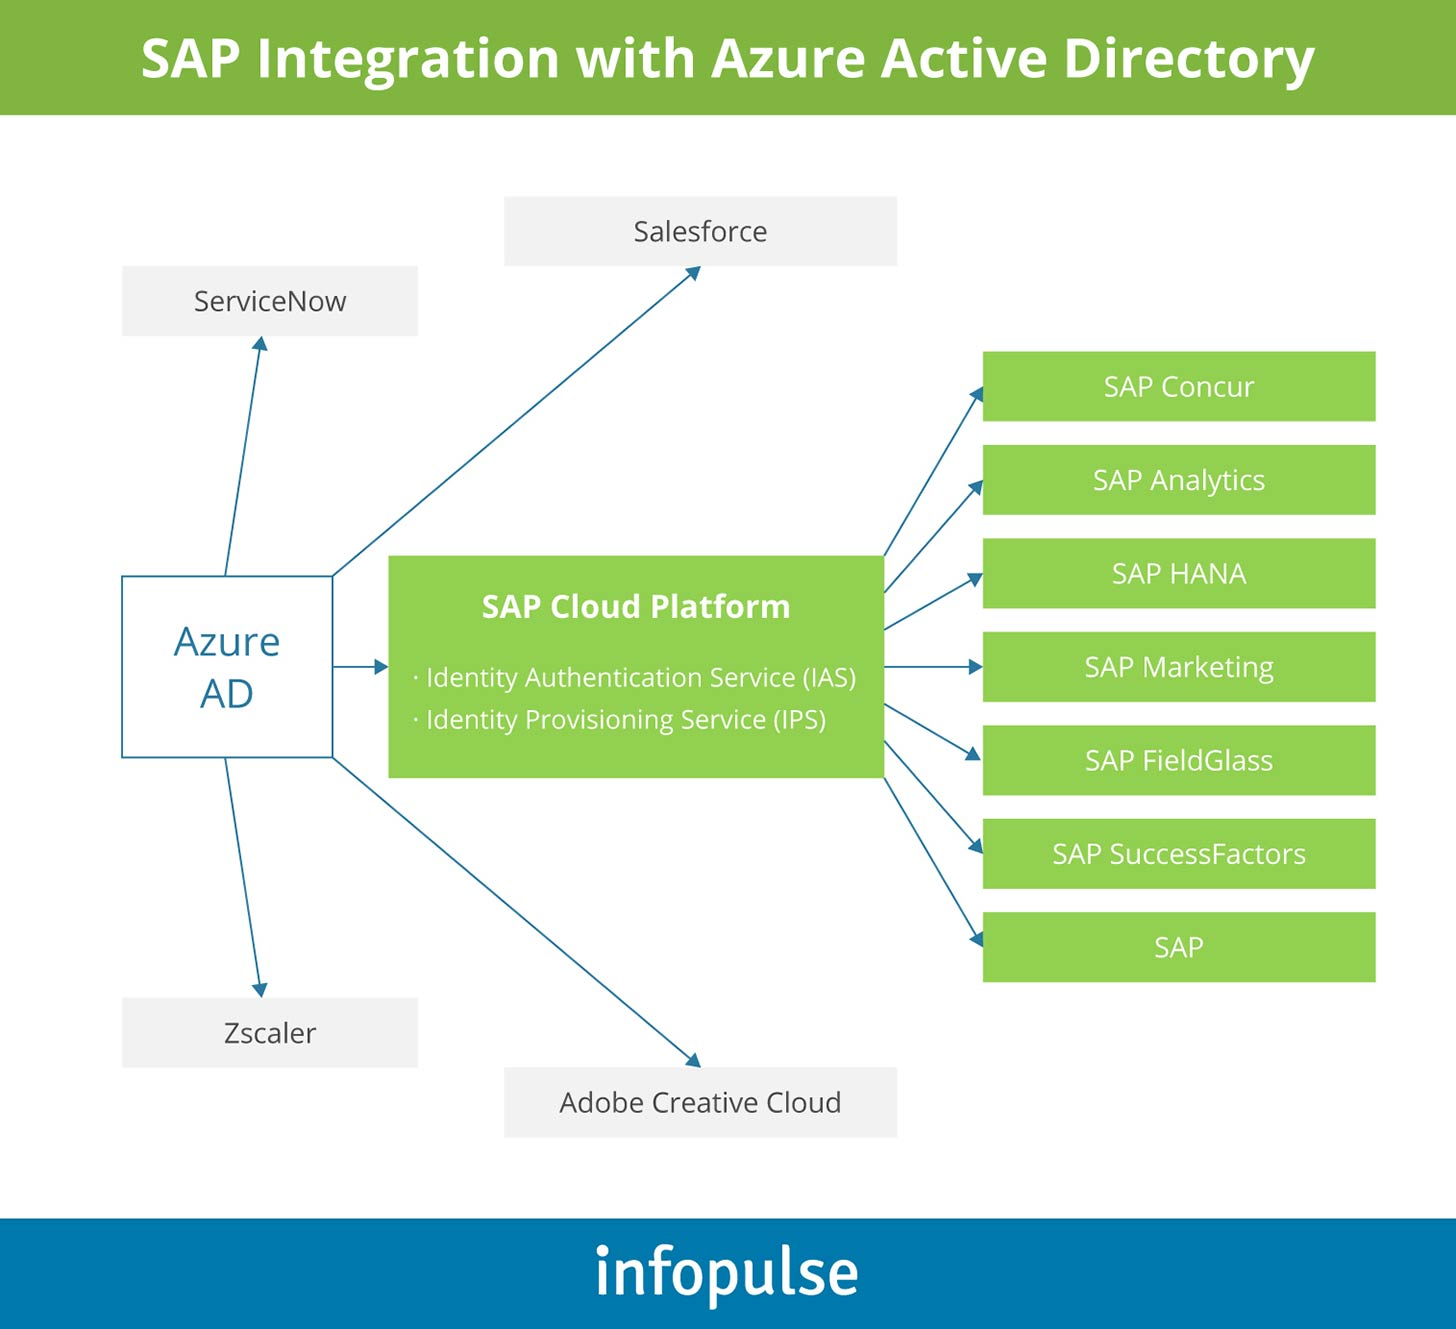 SAP Integration with Azure Active Directory - Infopulse - 1